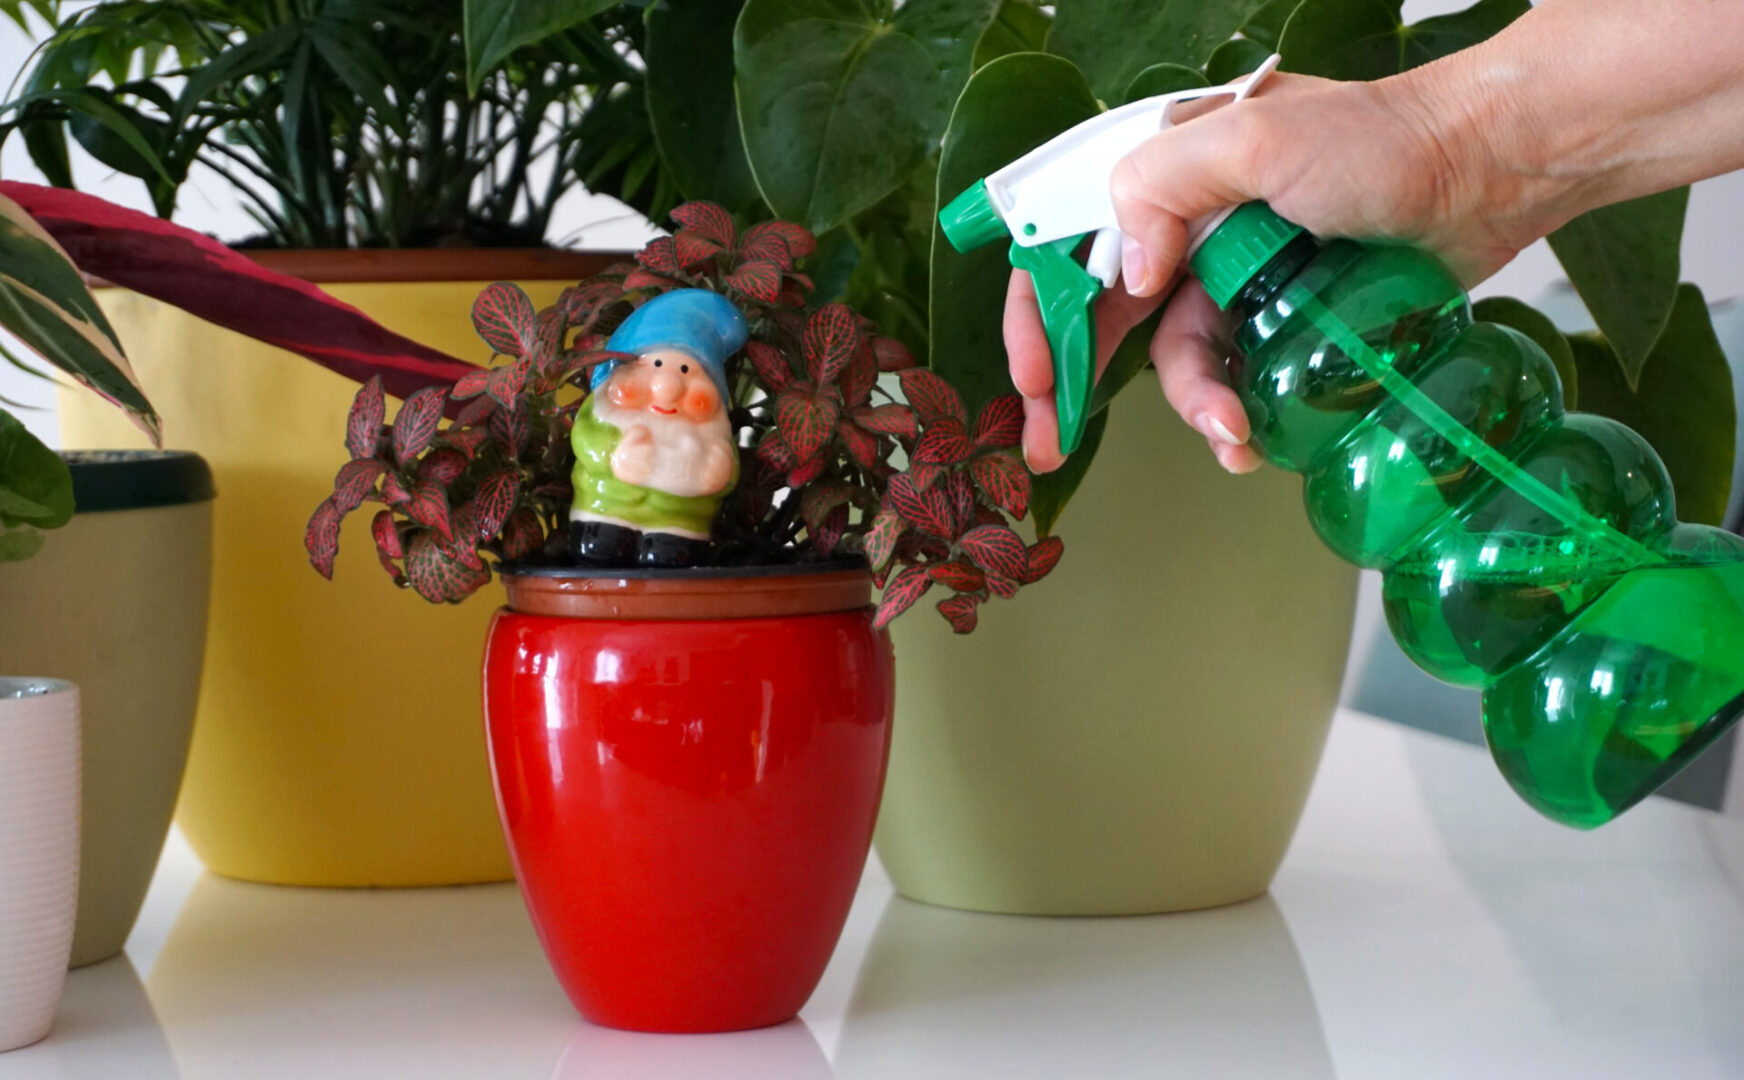 Household chemicals and harmful toxic substances in the home concept. Plant care protection with woman hand and green plastic bottle with liquid for spraying and houseplant protection and pest control